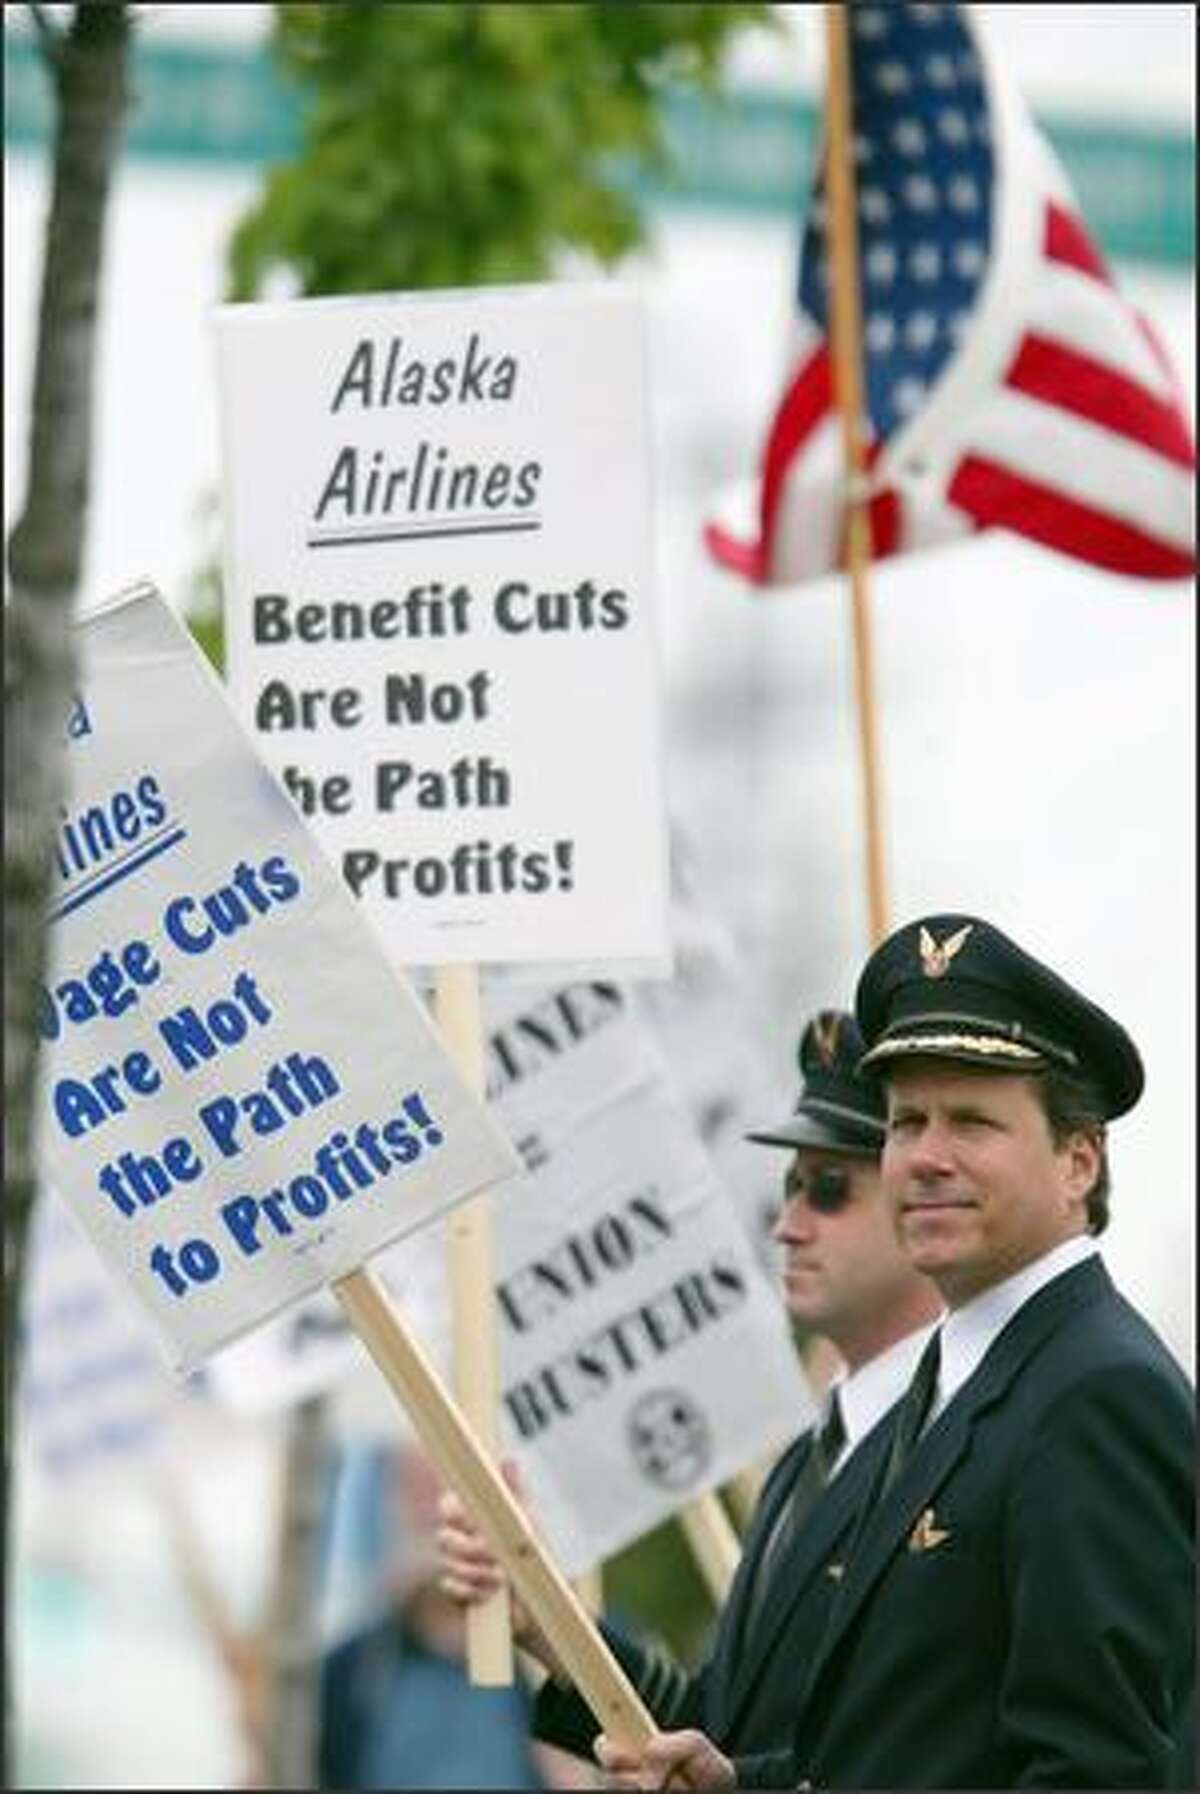 Alaska Airlines pilots Peter Barbin, left, and Glenn Vyskocic joined others picketing outside the annual shareholders meeting yesterday at the Museum of Flight. Employees are upset about layoffs and reduced pay.